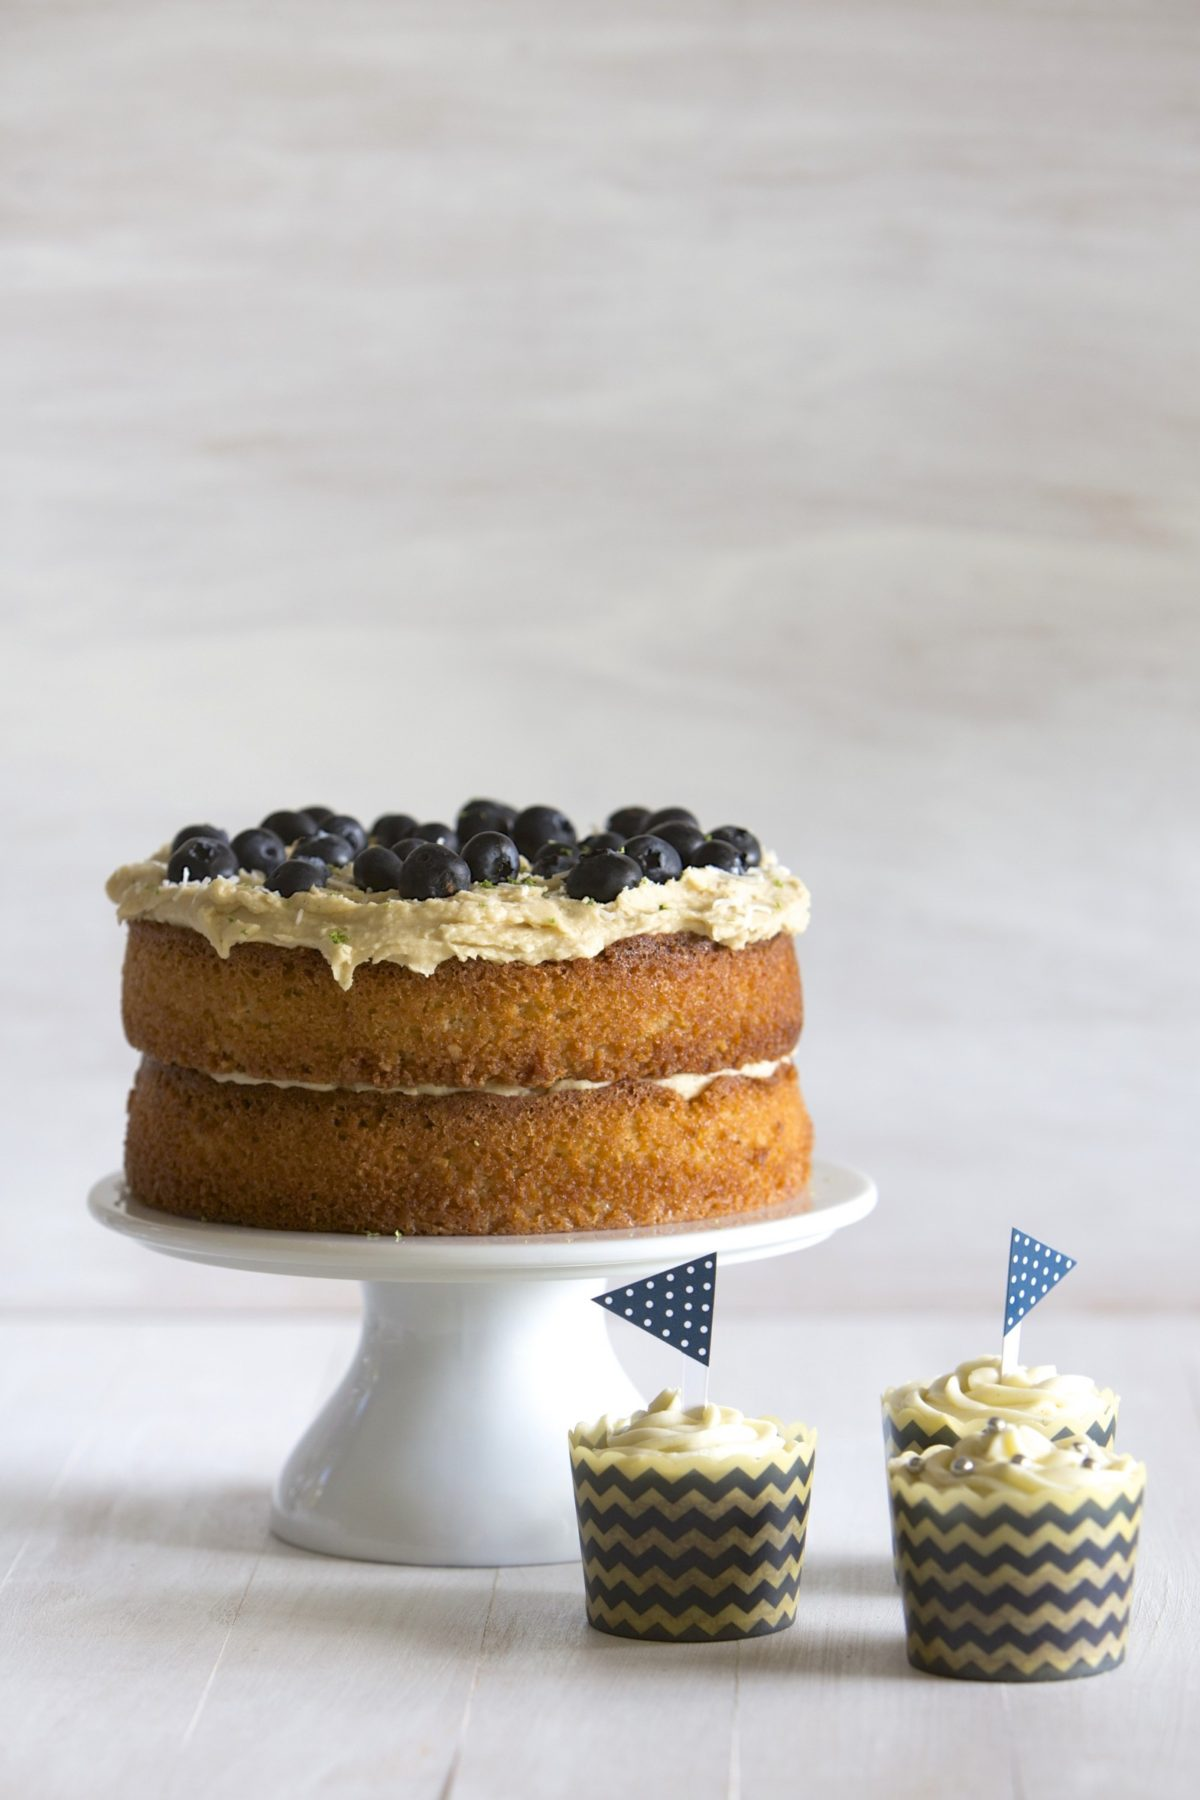 Gluten free lime and blueberry cake with coconut